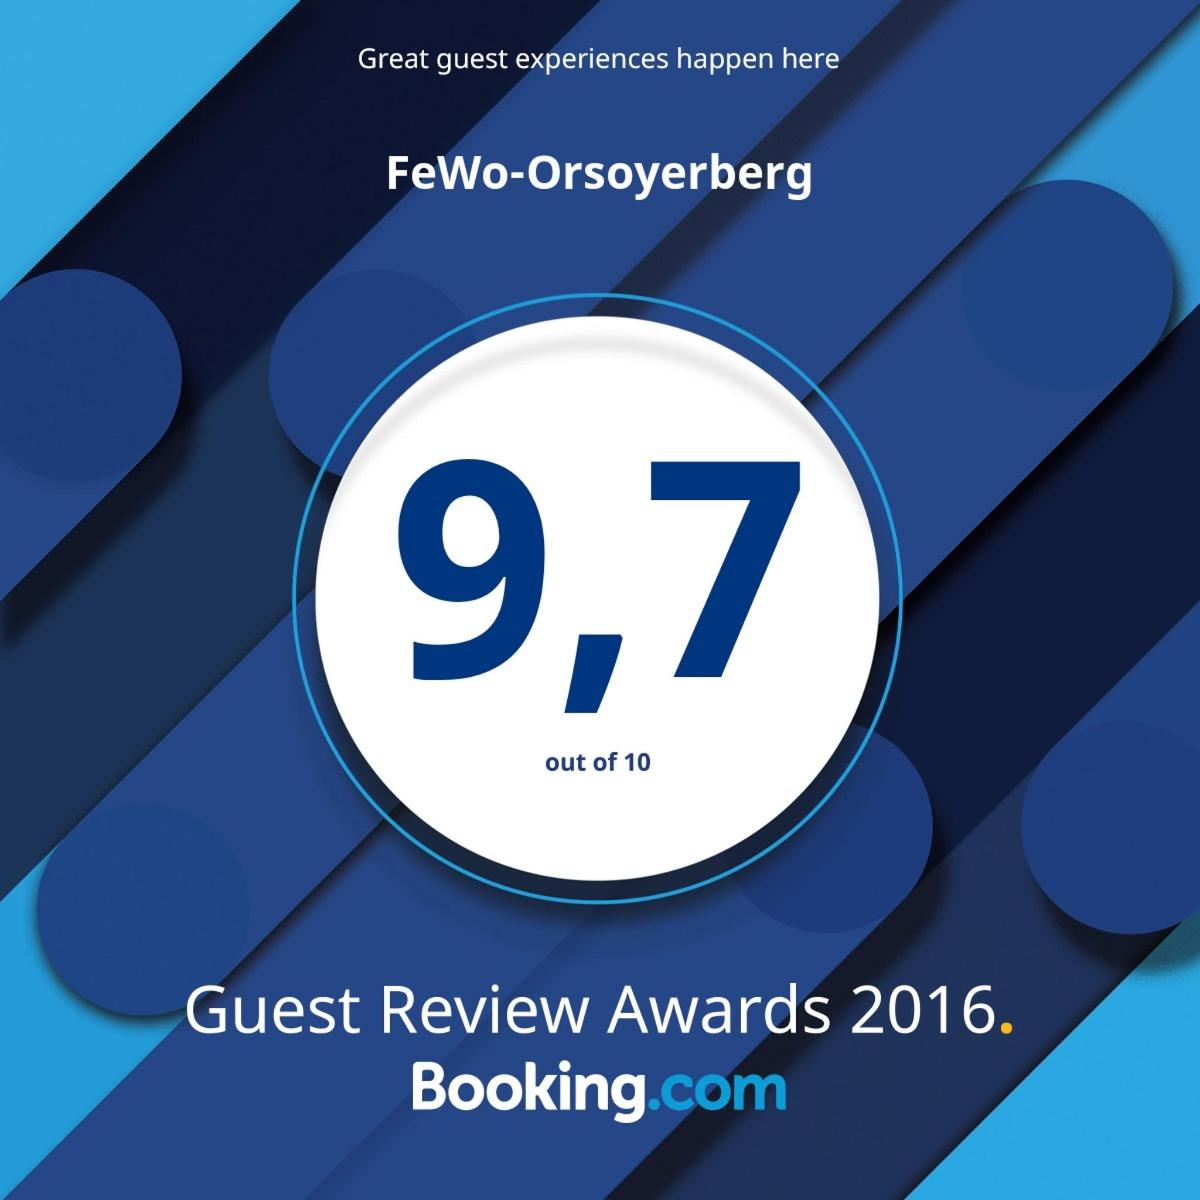 Guest Review Awards 2016